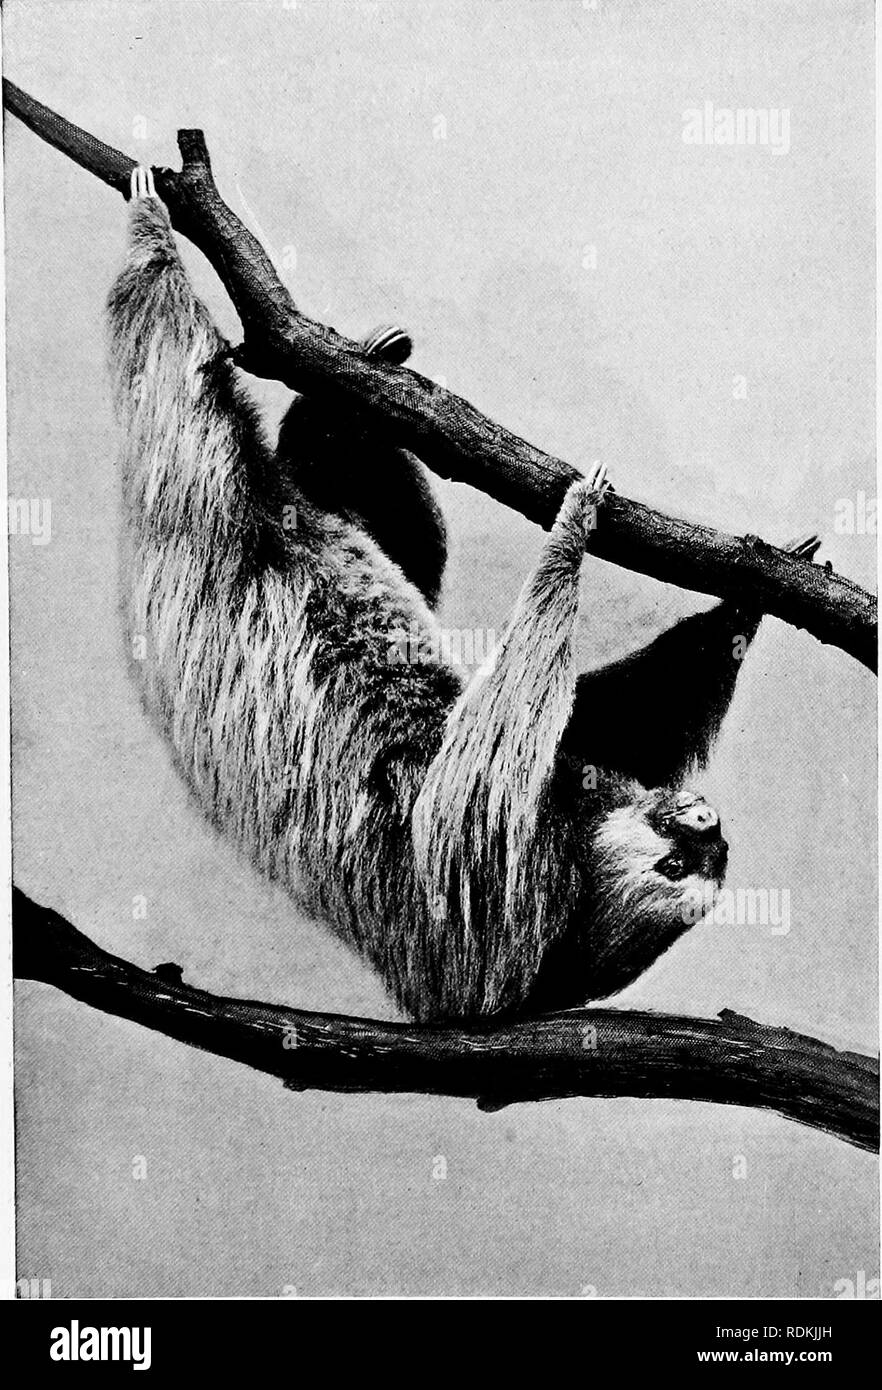 """. Mammals of other lands;. Mammals. CHAPTER XXI THE SLOTHS, JNT-EJTERS, AND ARMADILLOS BY W. P. PYCRAFT, A. L. S., F. Z. S. THE very remark- able assemblage of animals we are now about to consider includes many diverse forms, bracketed together to constitute one great group; and this on account of the peculiarities of the structure and distribution of the teeth, which are never present in the front of the jaw, and may be absent altogether. Of the five groups recognised, three occur in the New and two"""" in the Old World. All have undergone vefy considerable modification of form and structur - Stock Image"""